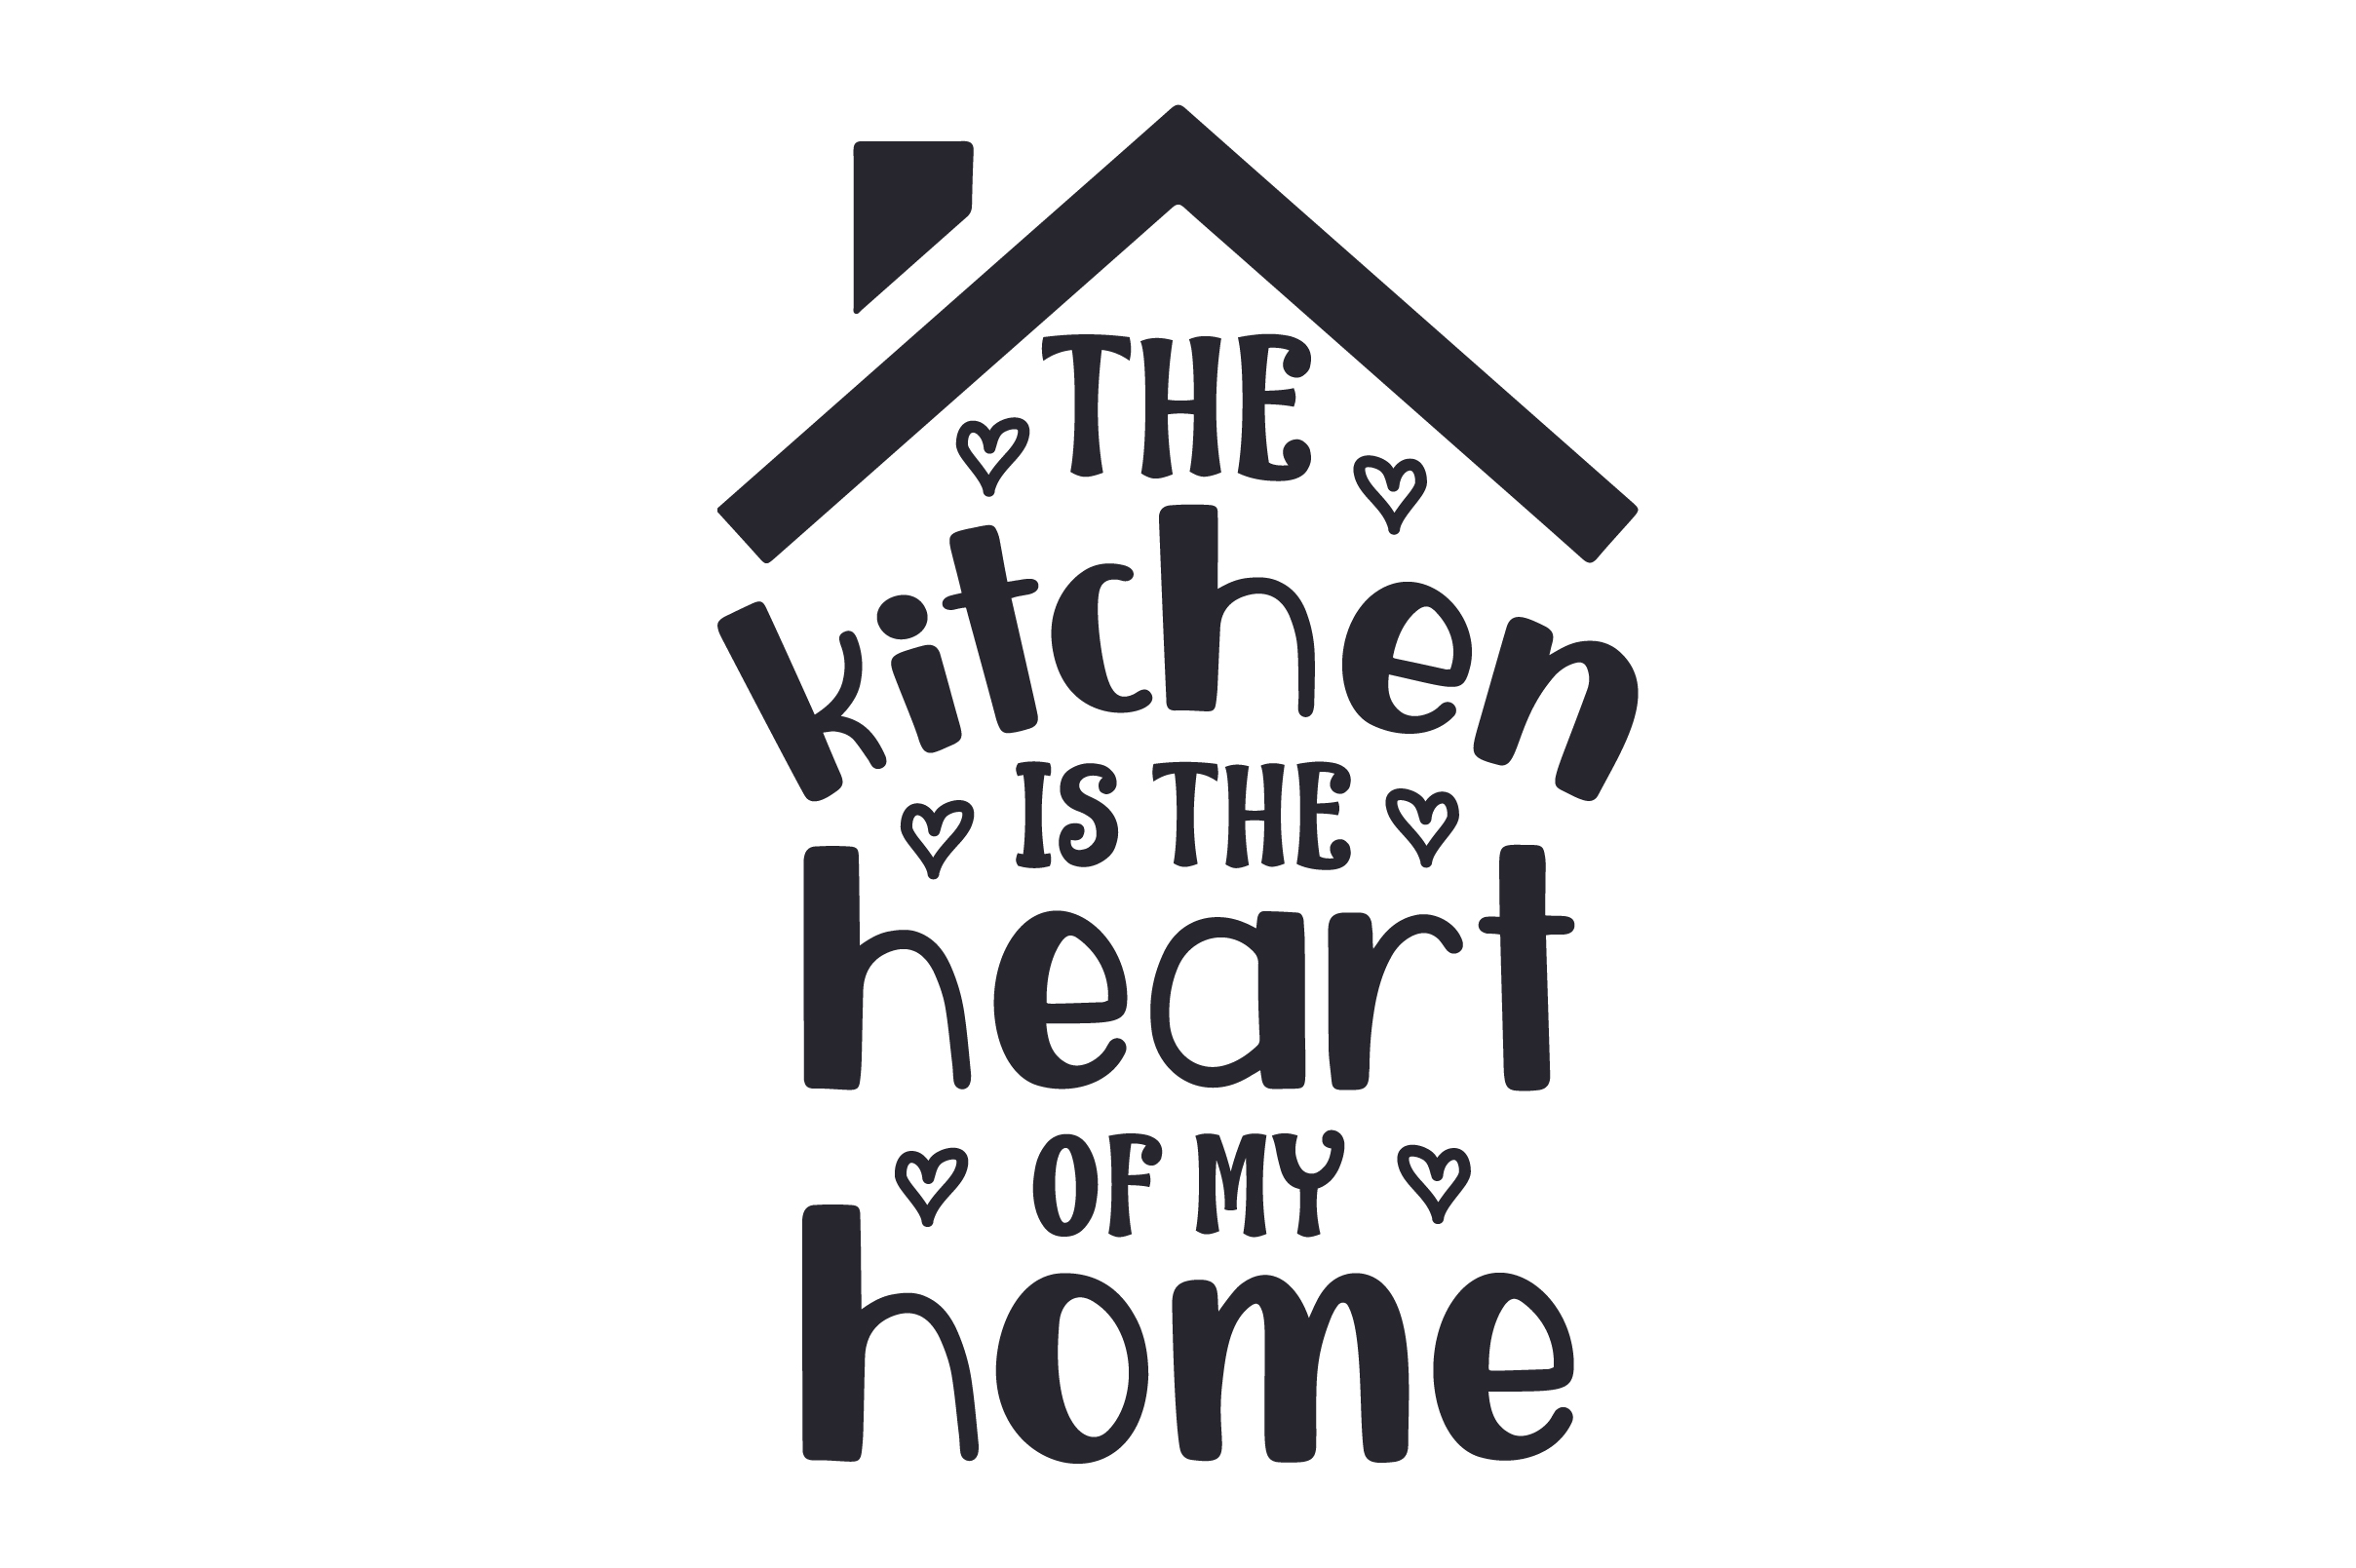 The kitchen is the heart of my home